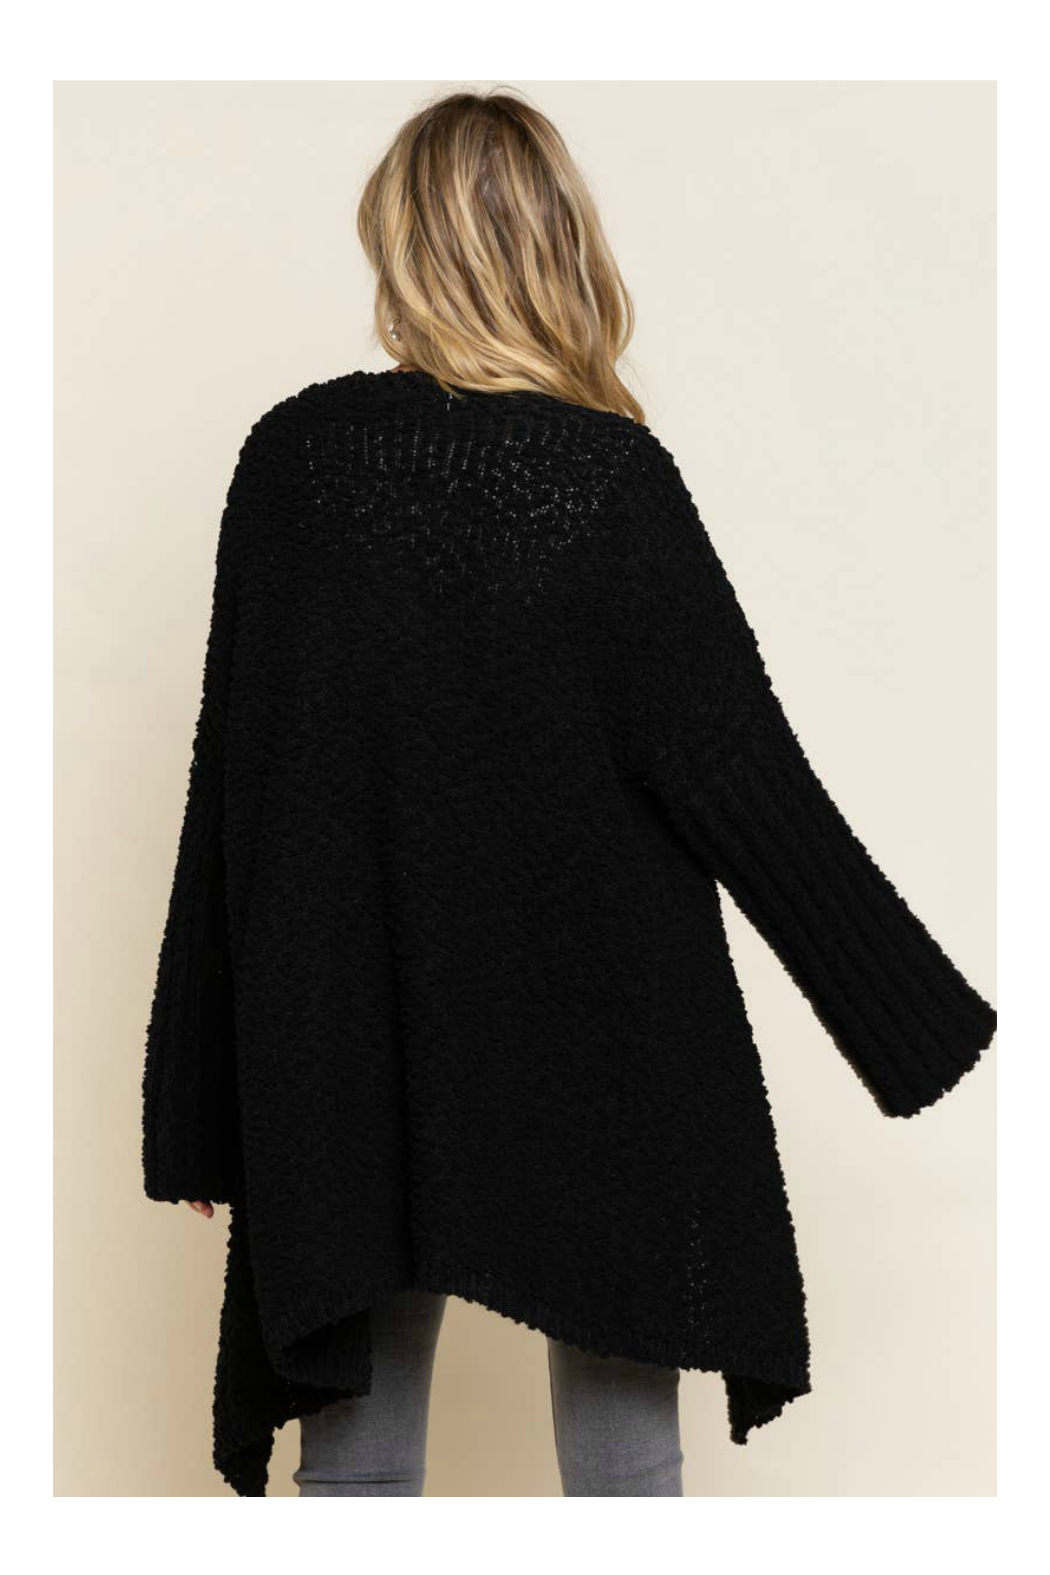 Pol Clothing Waterfall Cardigan Sweater - Front Full Image